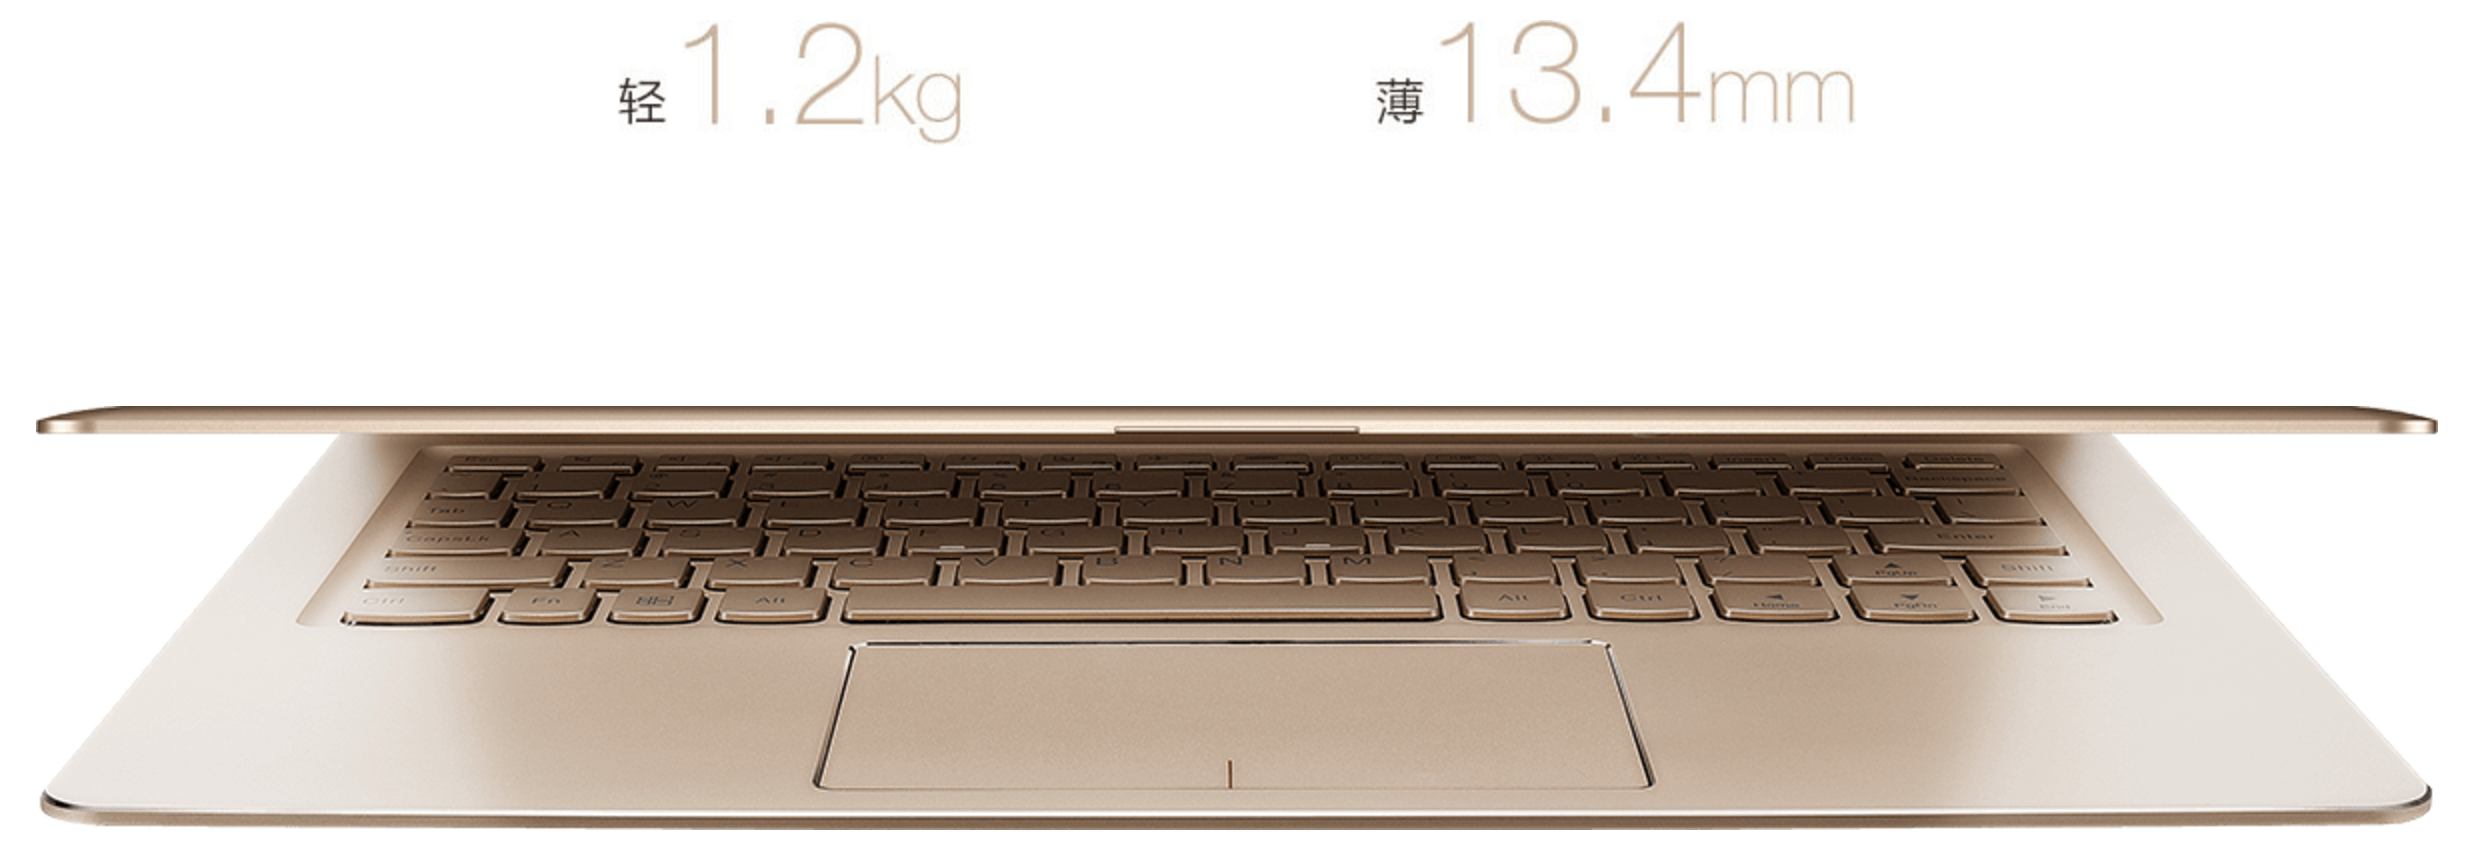 ideapad-air12-weight